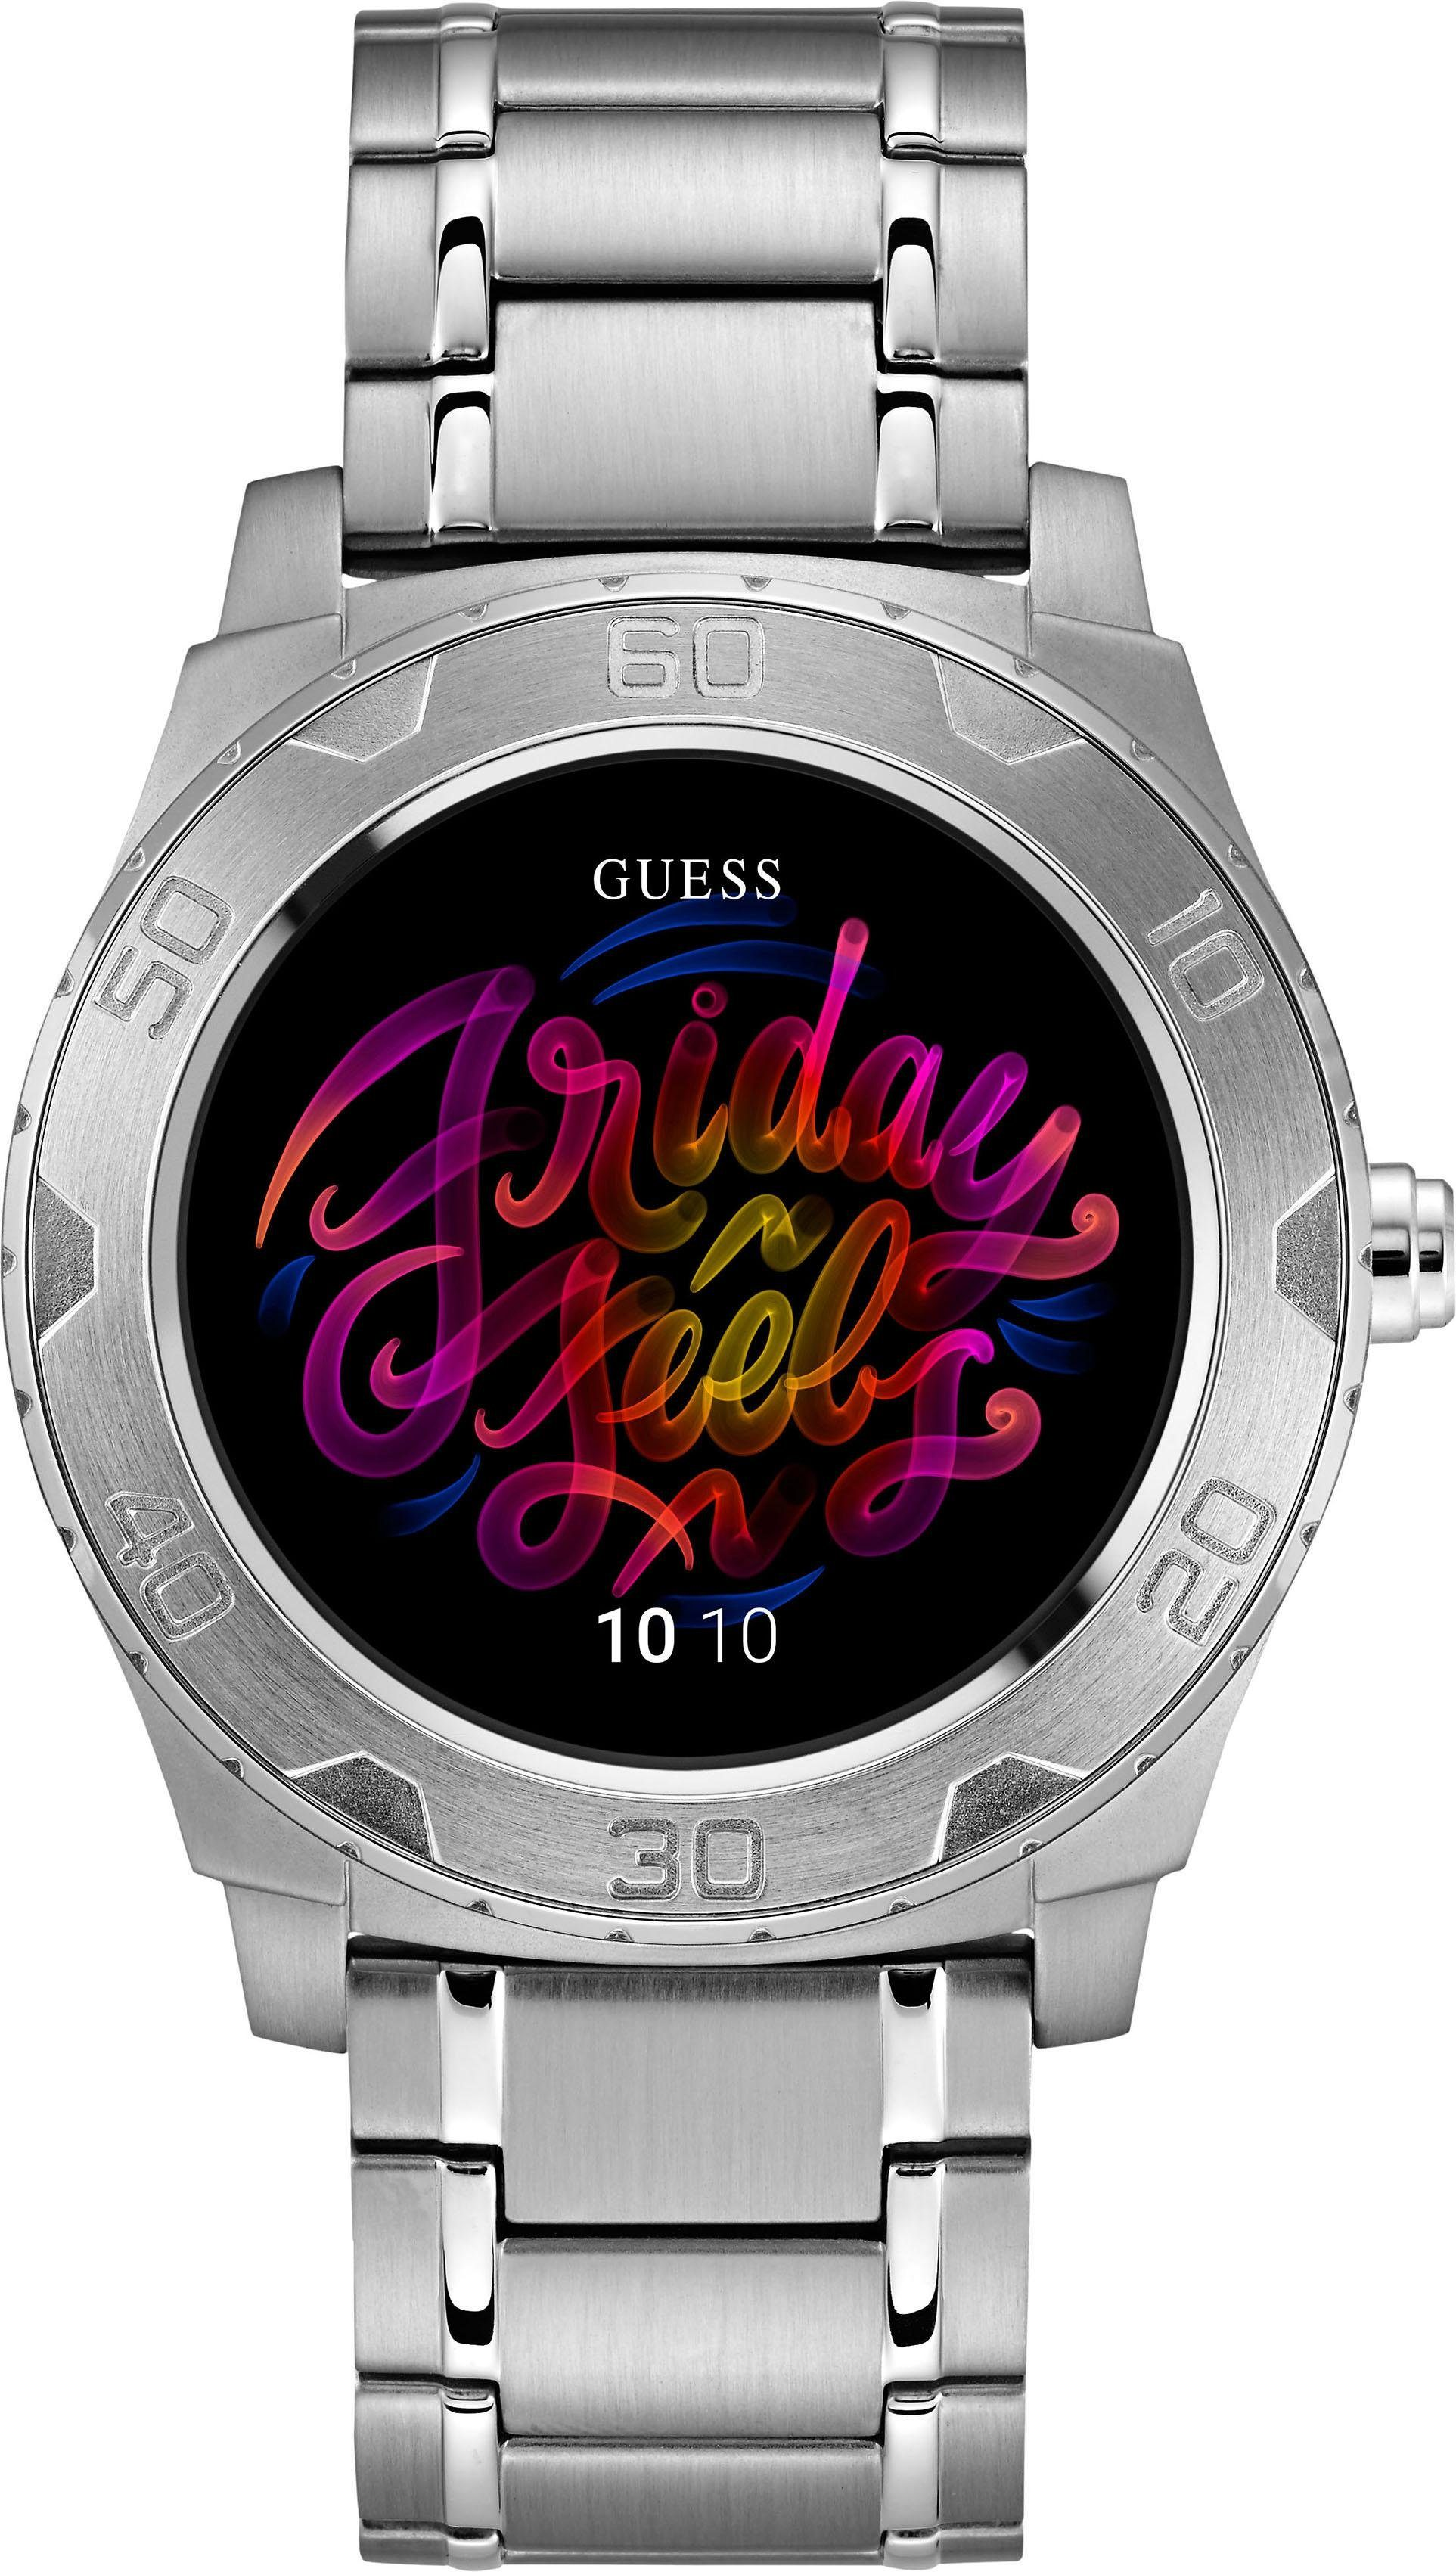 GUESS CONNECT ACE C1001G4 Smartwatch Android Wear